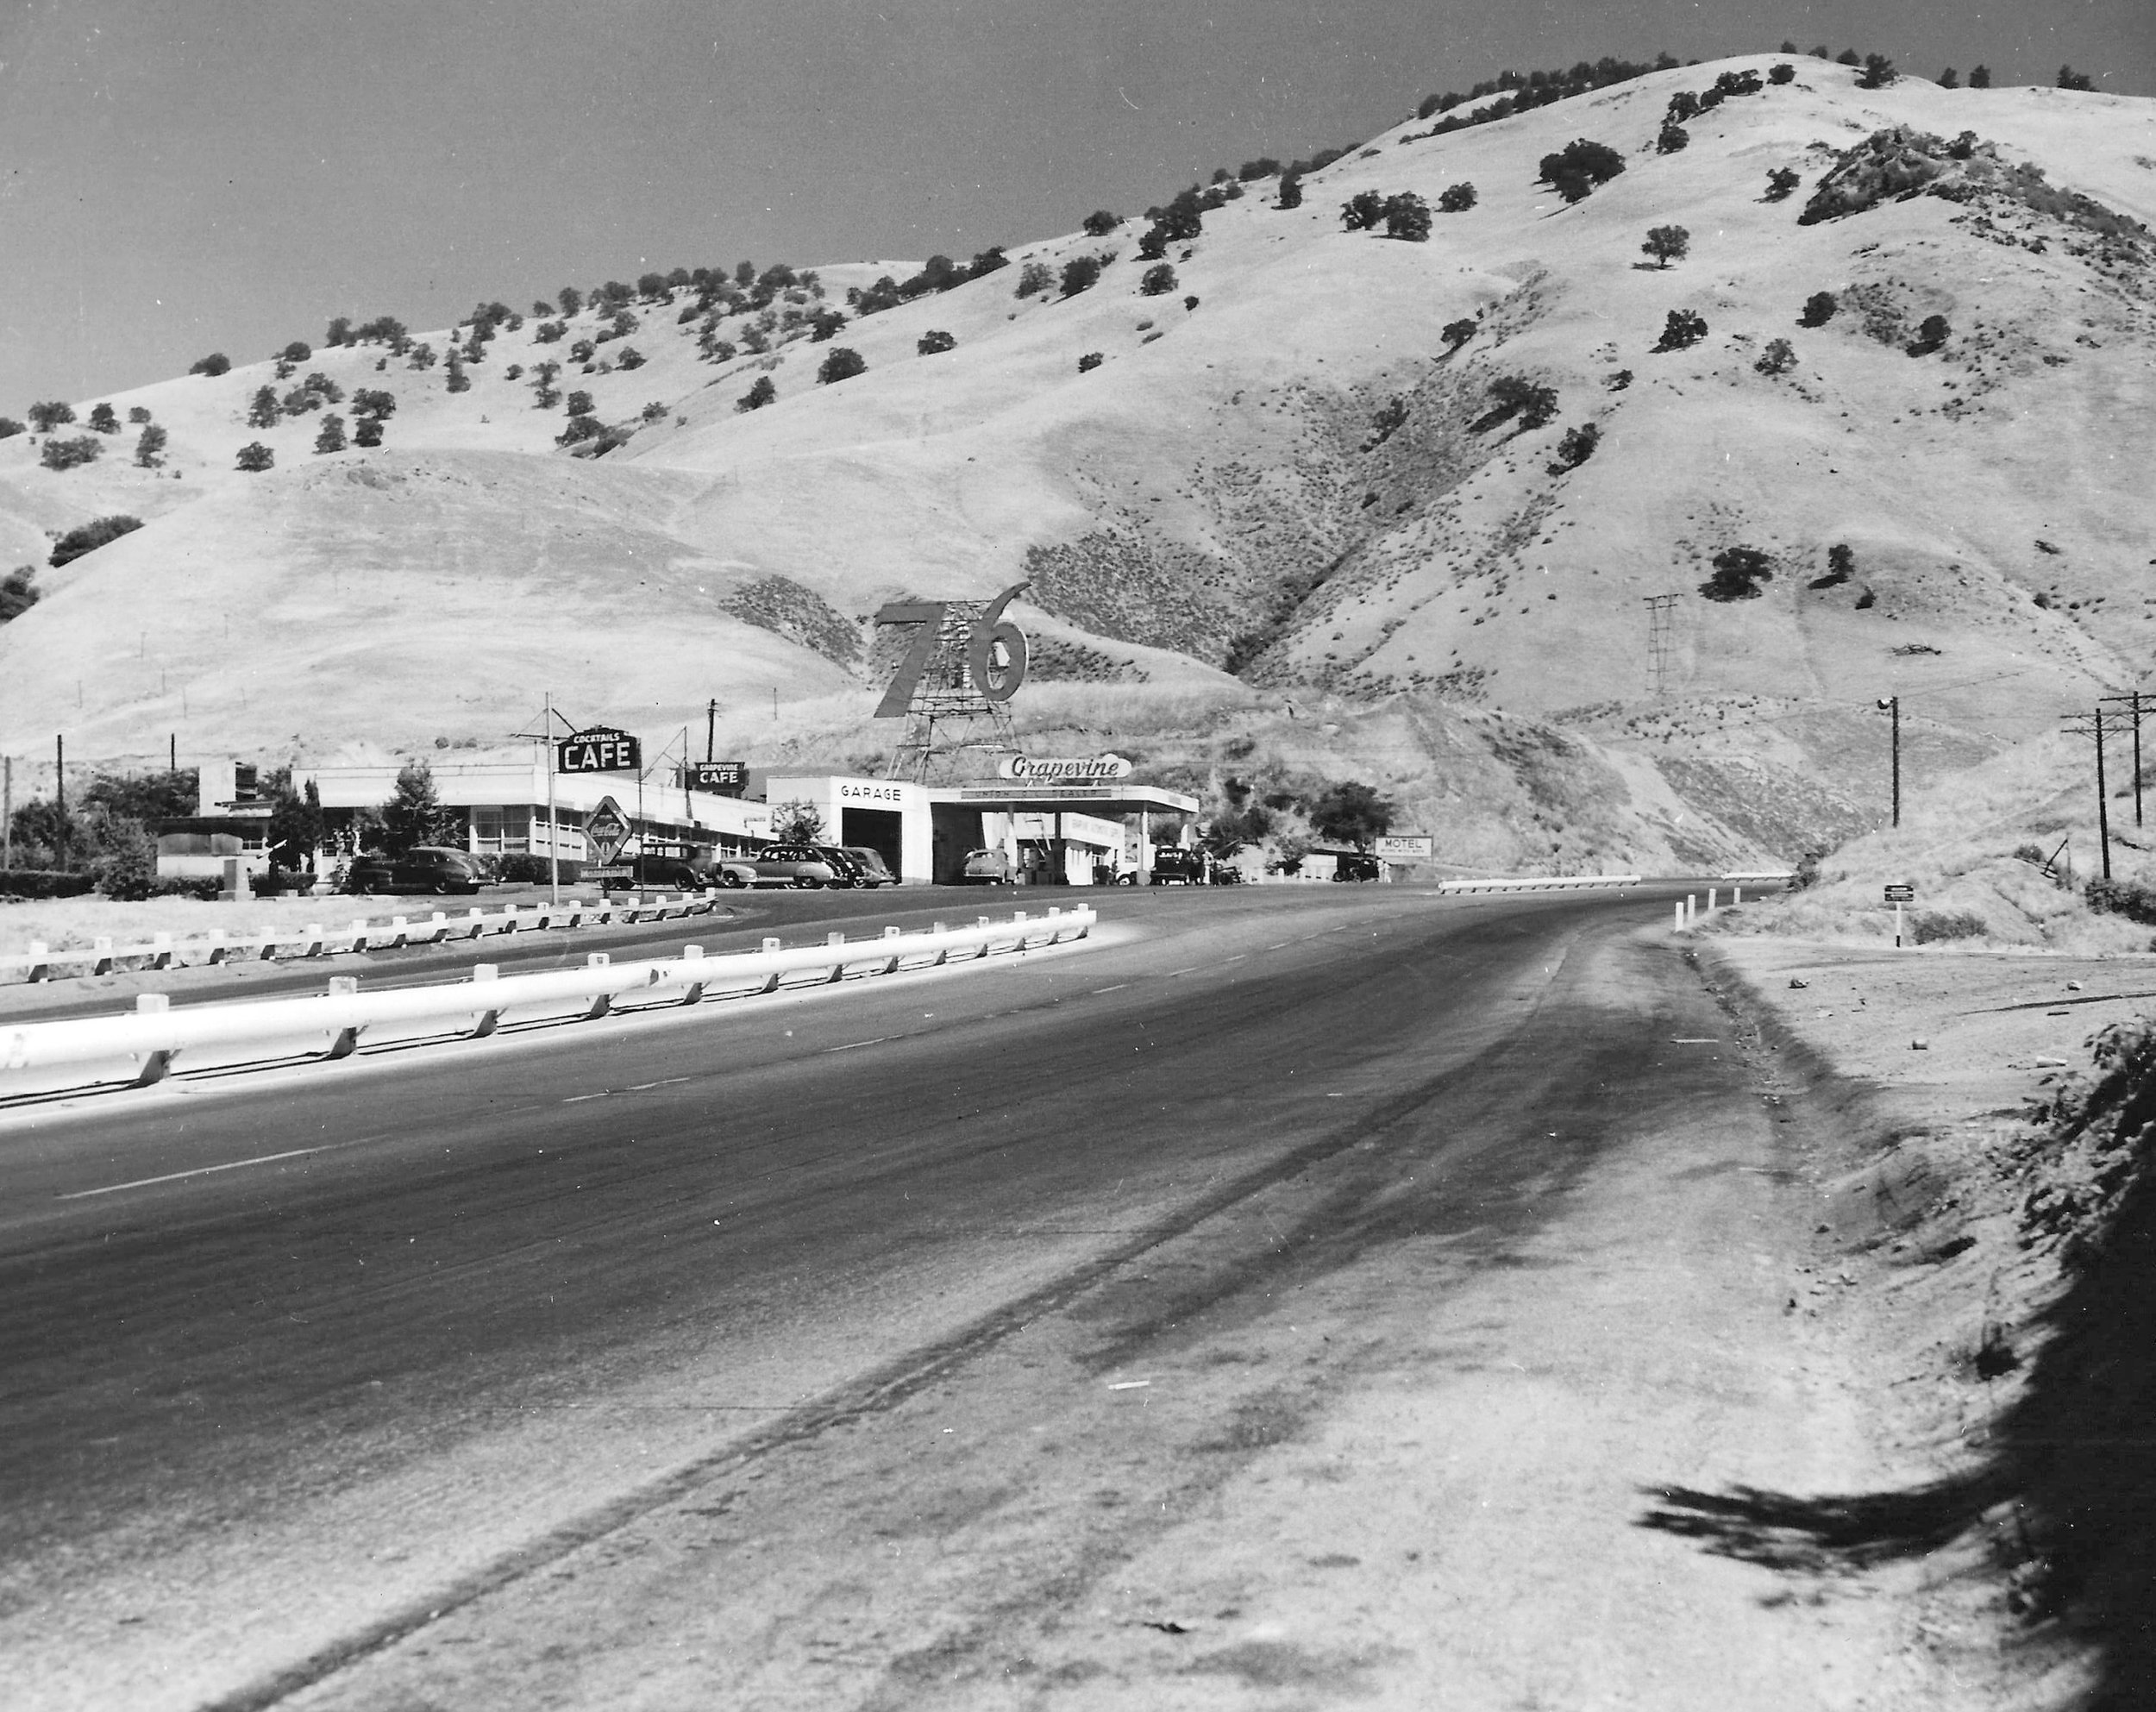 The café, garage and 76 station at the bottom of the Grapevine Grade bore witness to numerous crashes, as trucks came barreling down the incline and careened off the roadway. Photo courtesy Ridge Route Communities Historical Society.